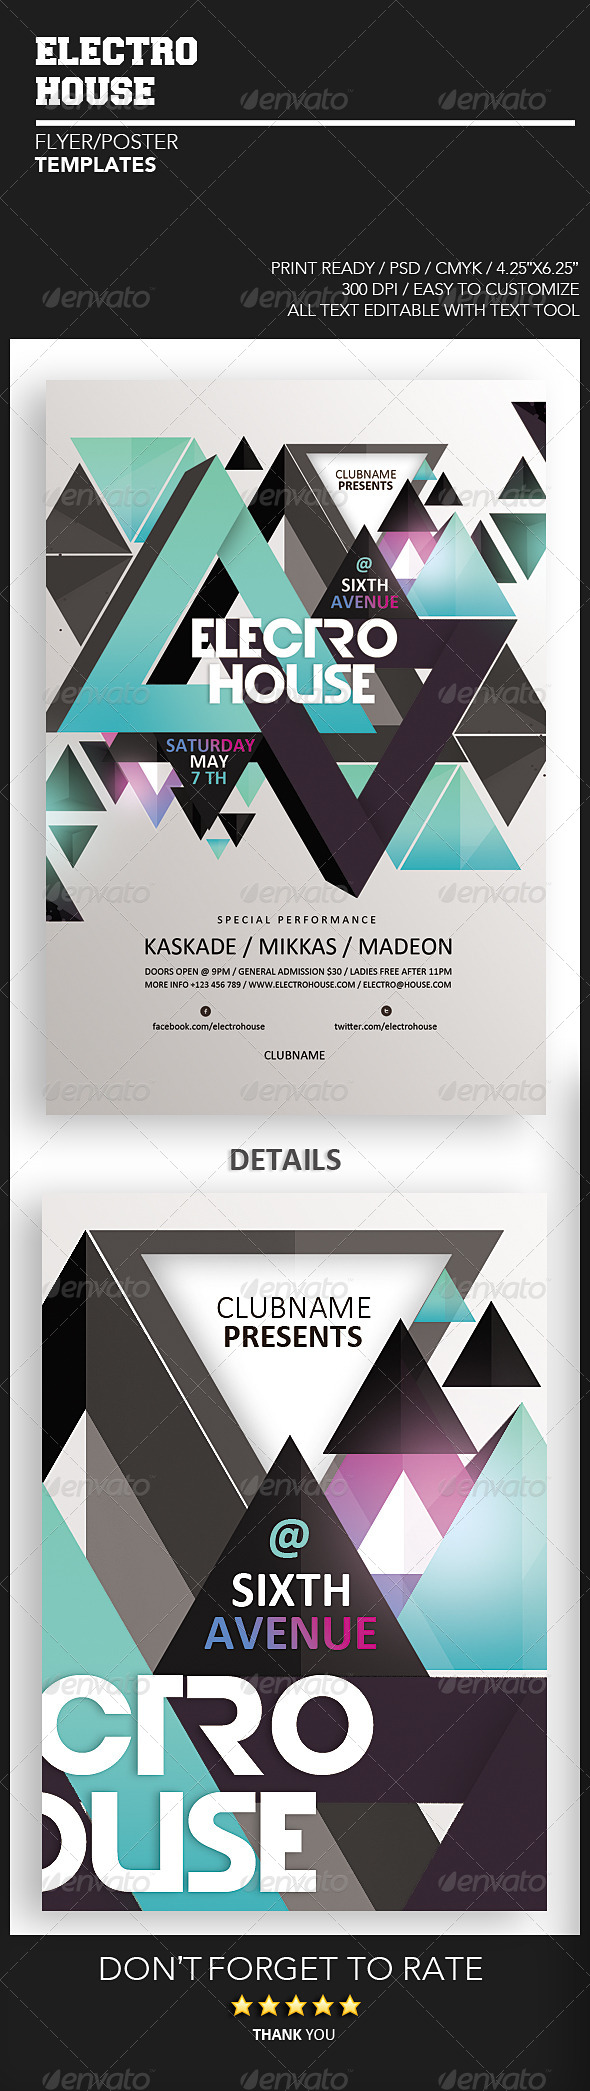 GraphicRiver Electro House Flyer 4323942